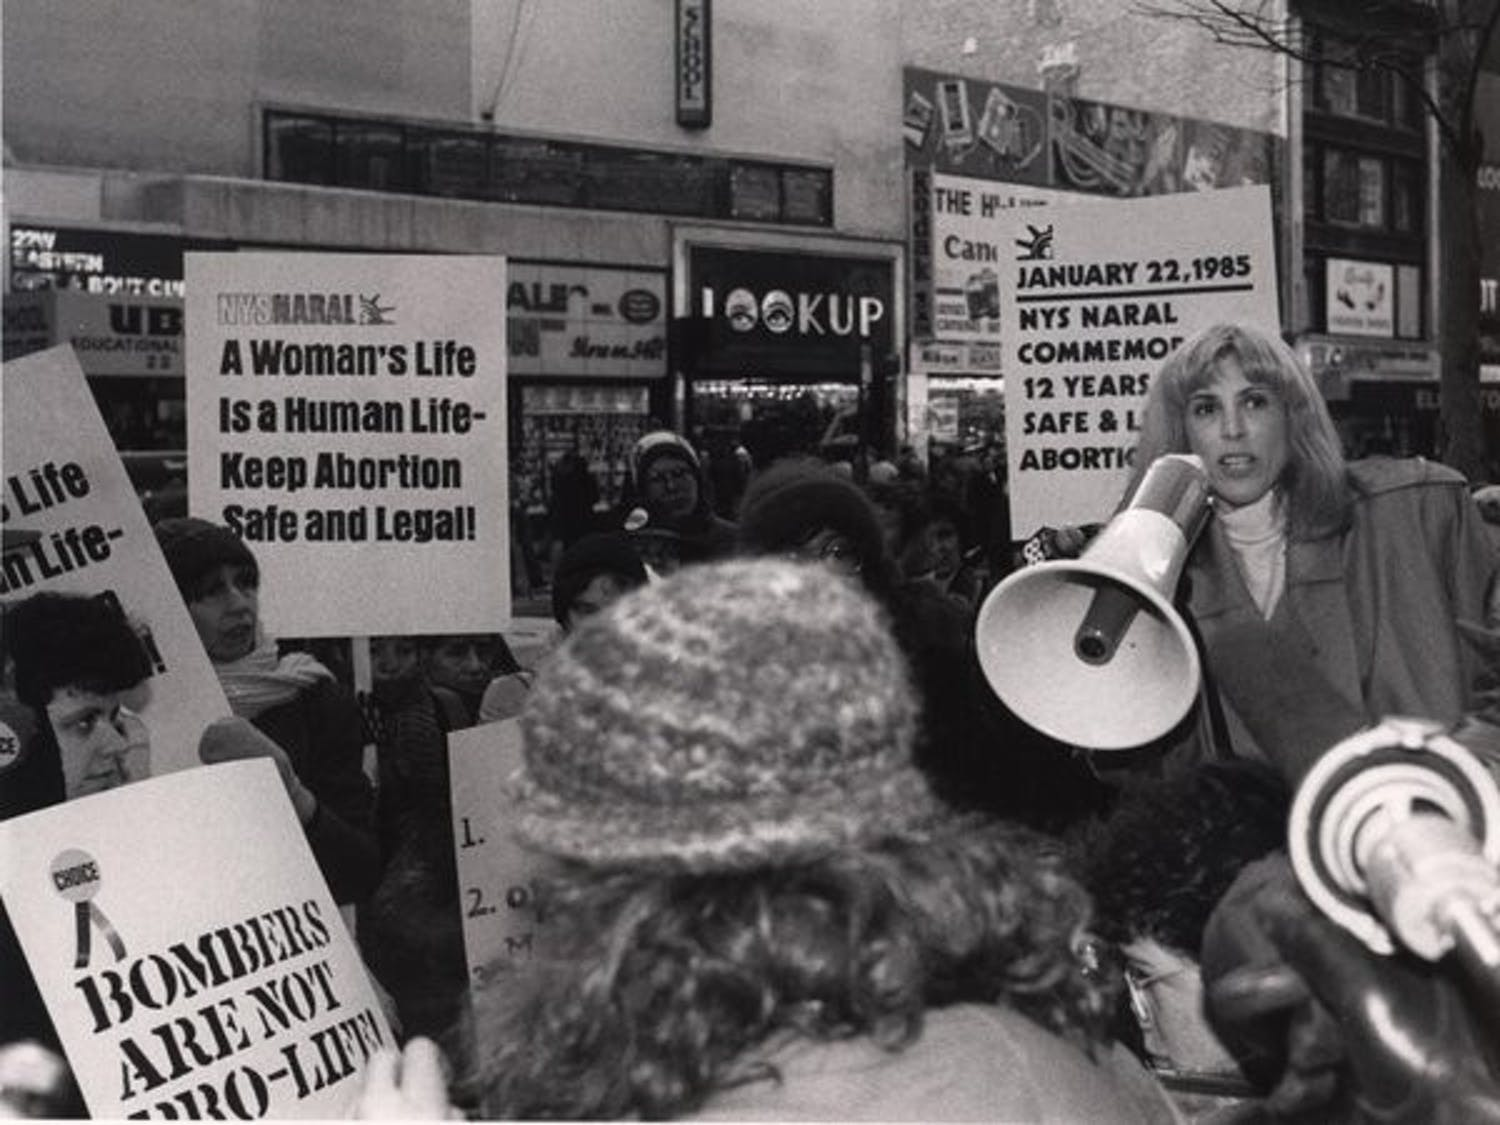 Merle Hoffman, pictured above at an abortion rights rally, is just one of the many women connected to the Sallie Bingham Center for Women's History and Culture.